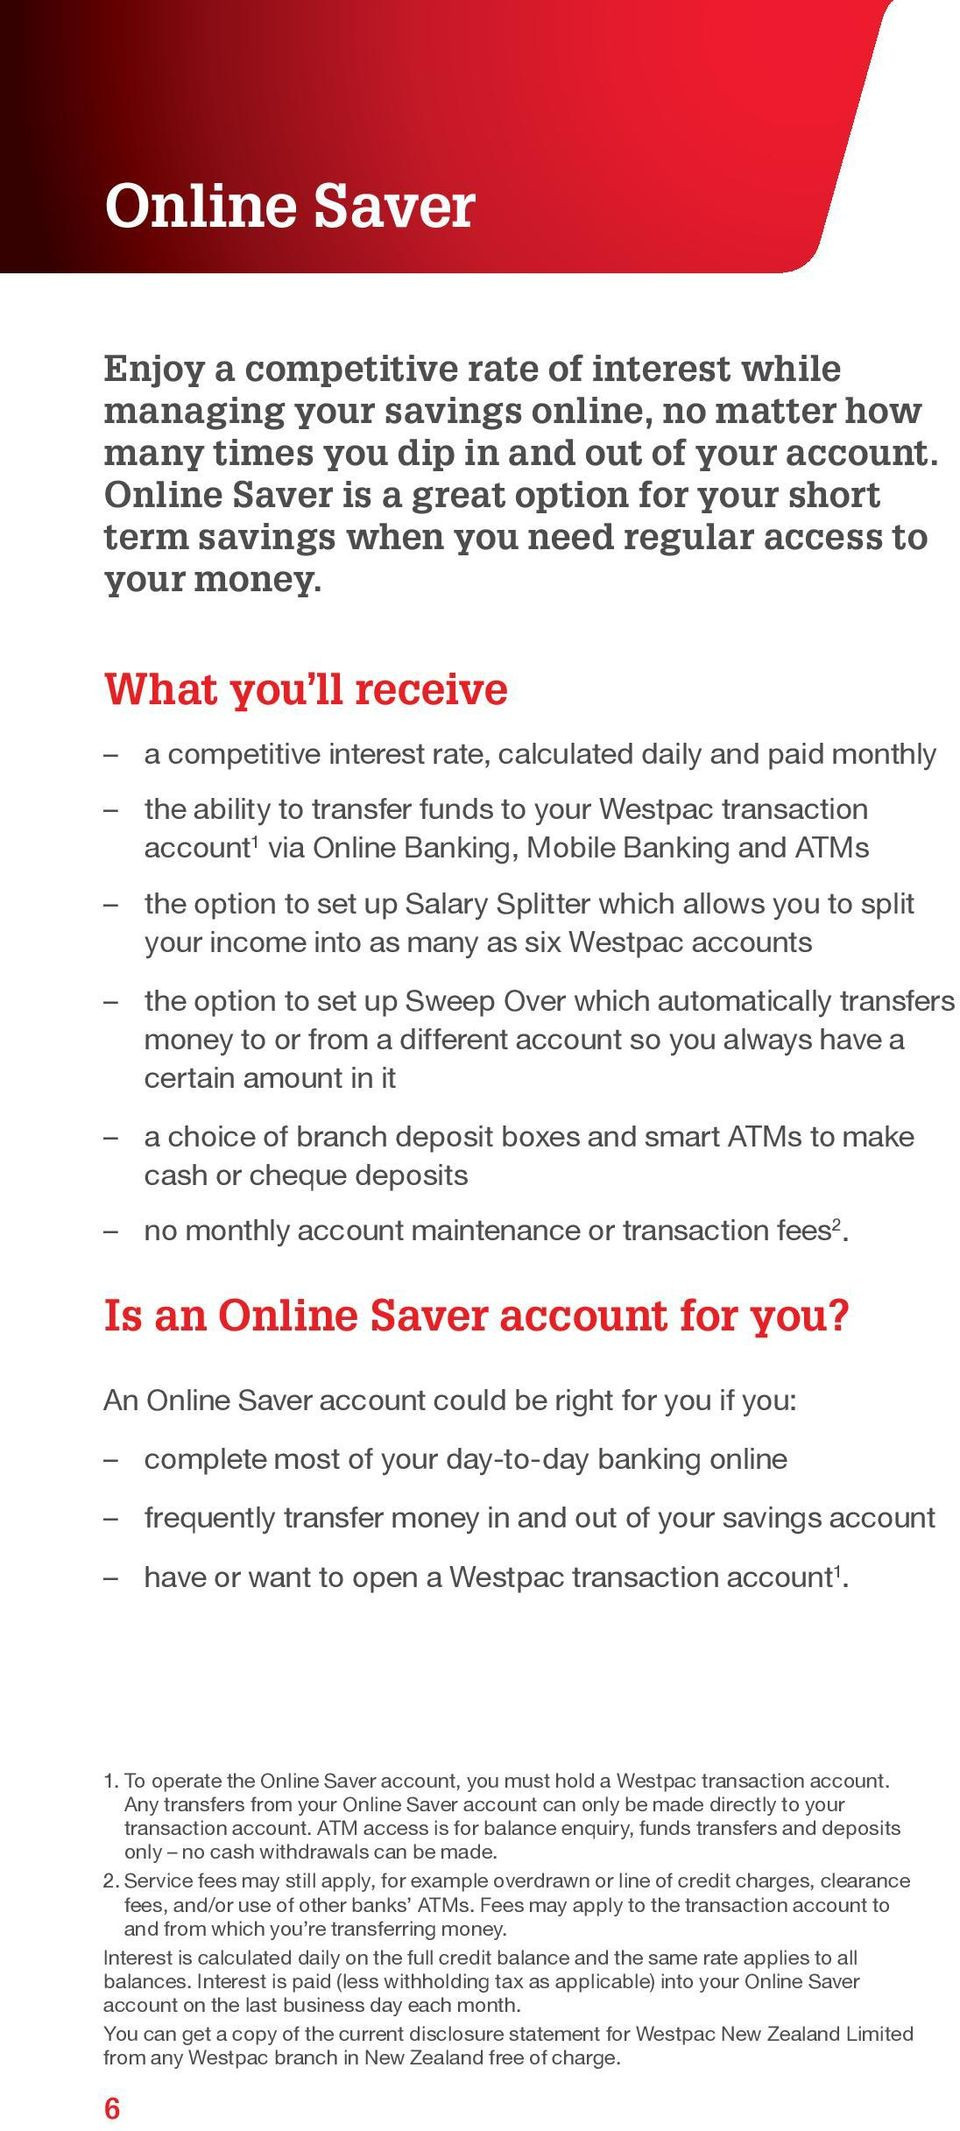 What you ll receive a competitive interest rate, calculated daily and paid monthly the ability to transfer funds to your Westpac transaction account 1 via Online Banking, Mobile Banking and ATMs the